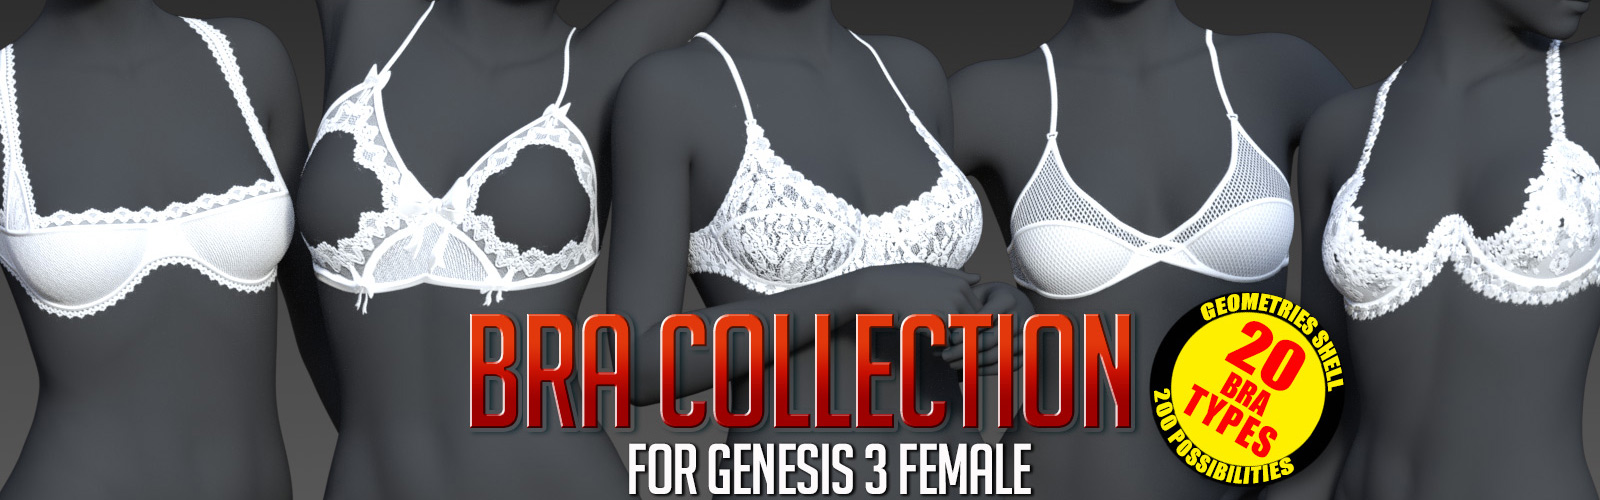 Bra Collection for G3 females